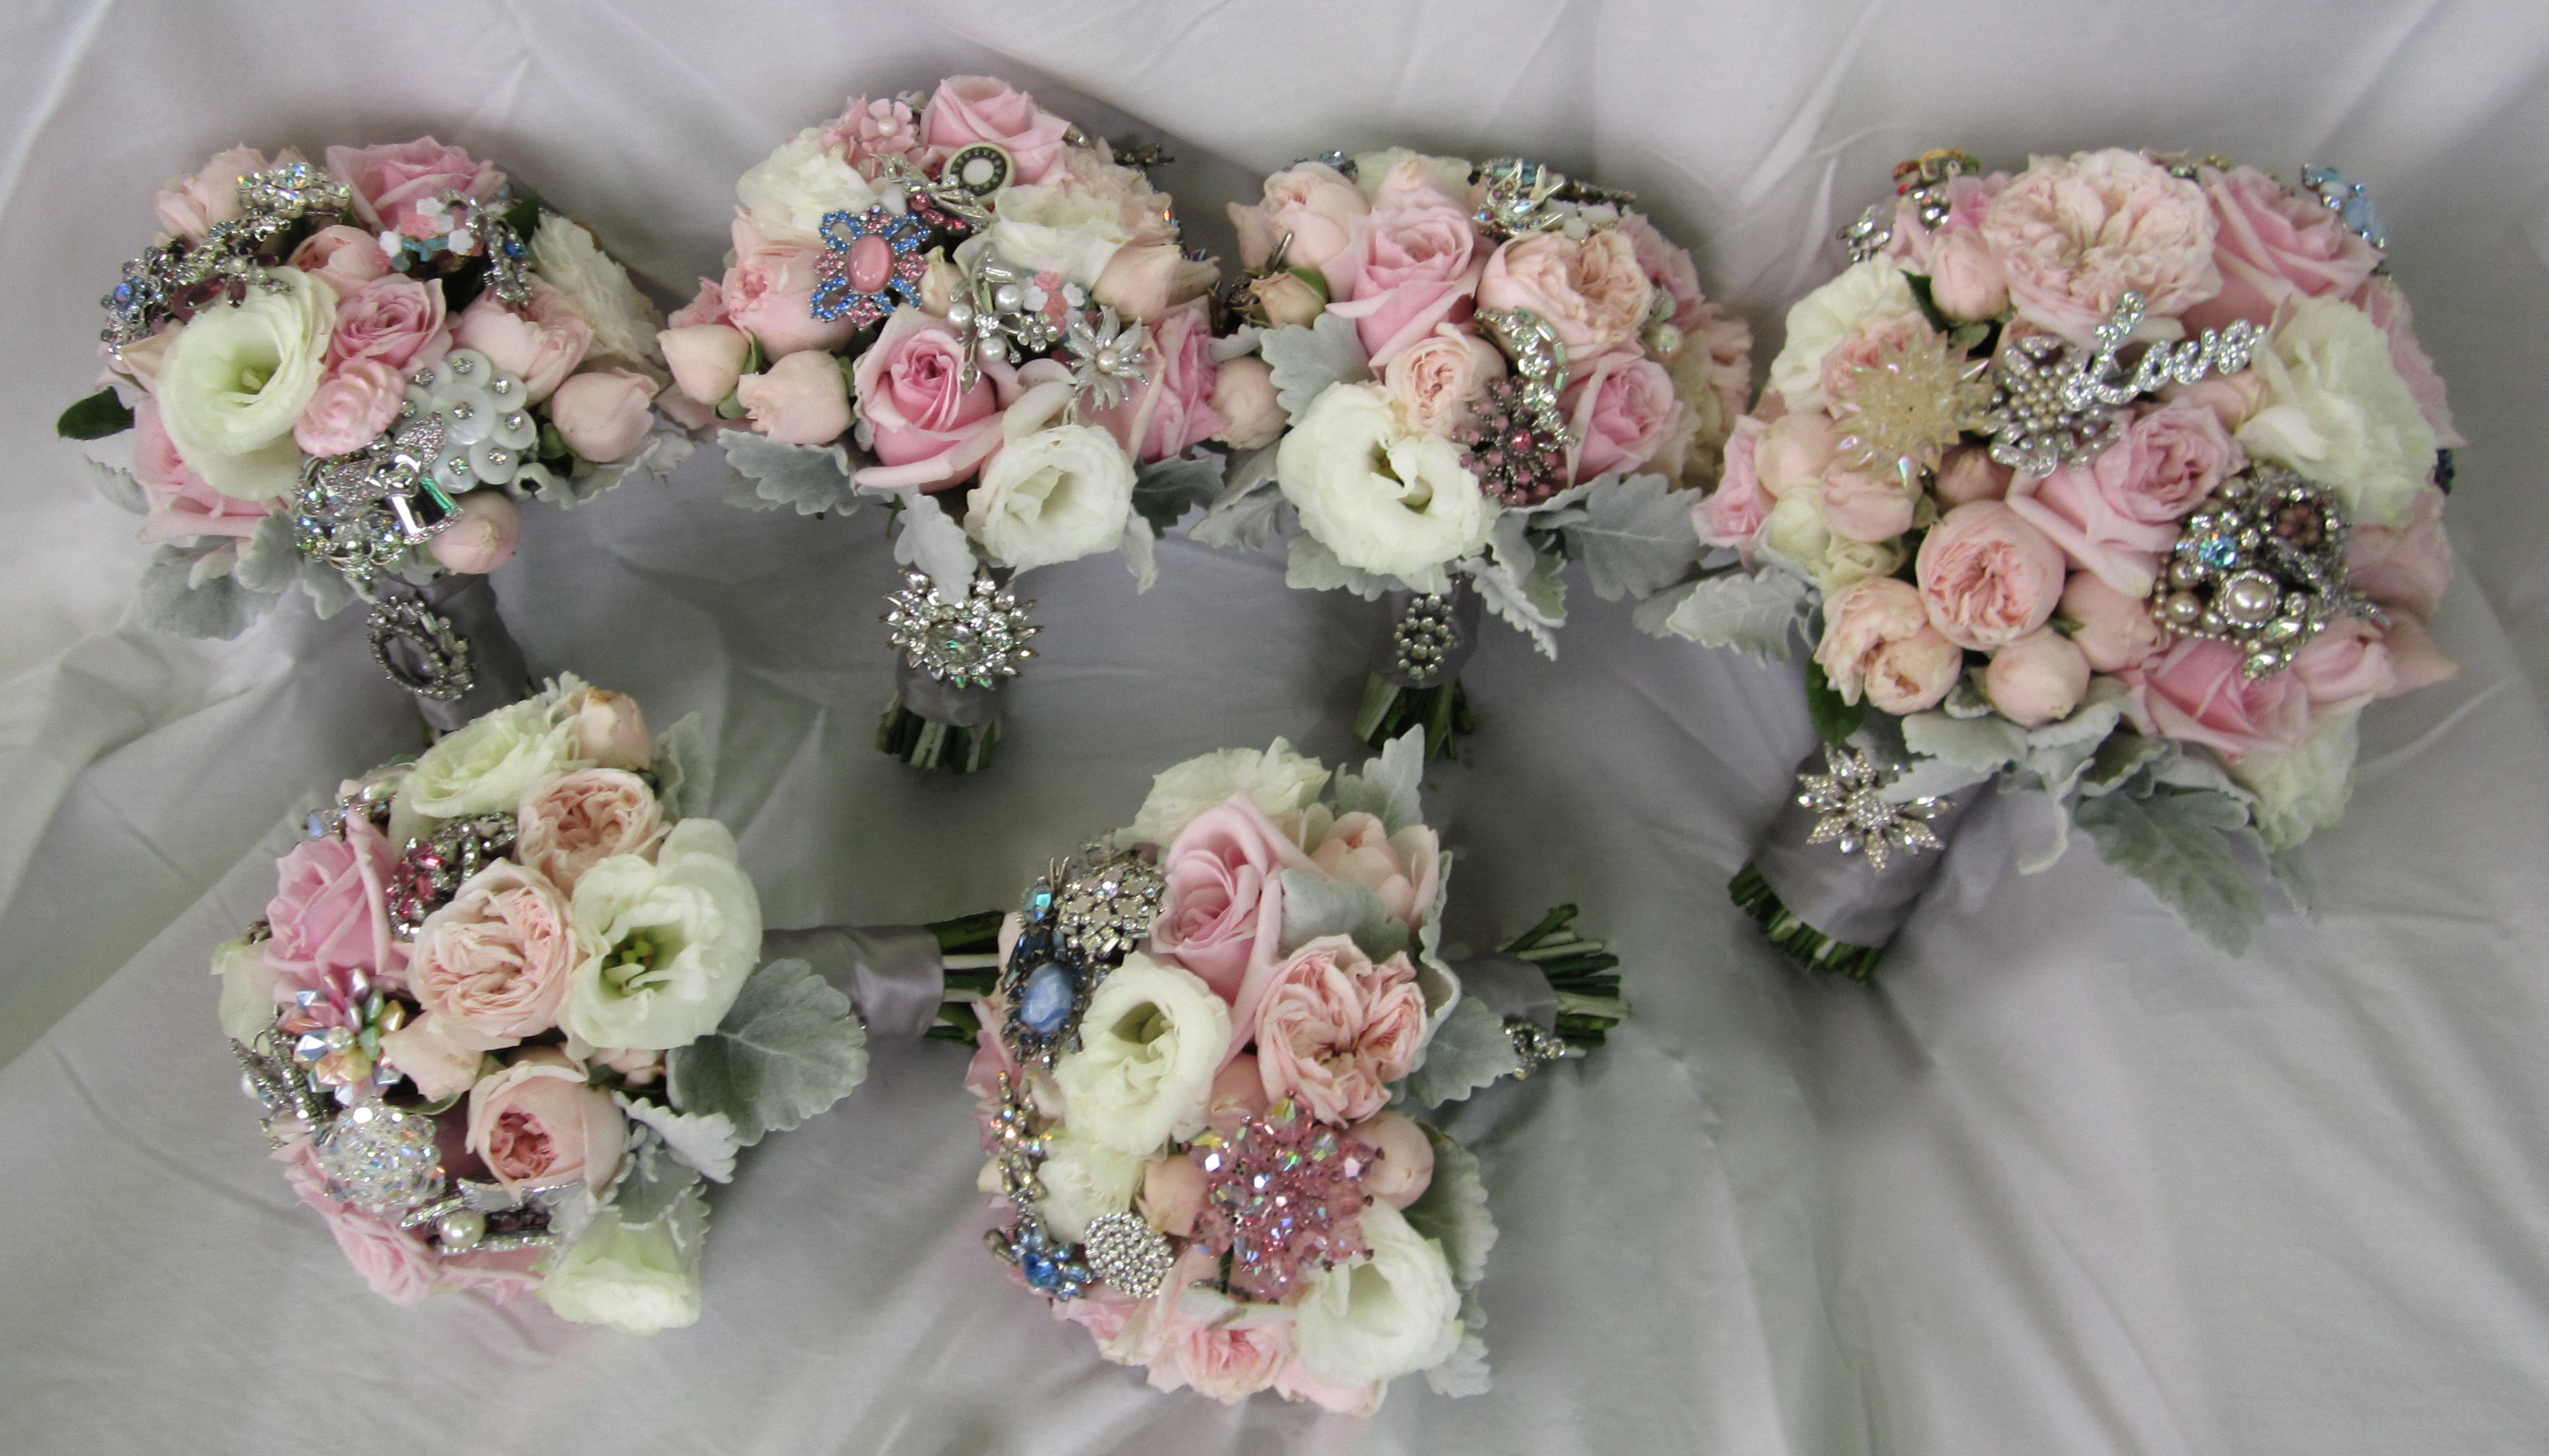 Brooch Bridal Bouquets Springfield Florist Weddings Essex